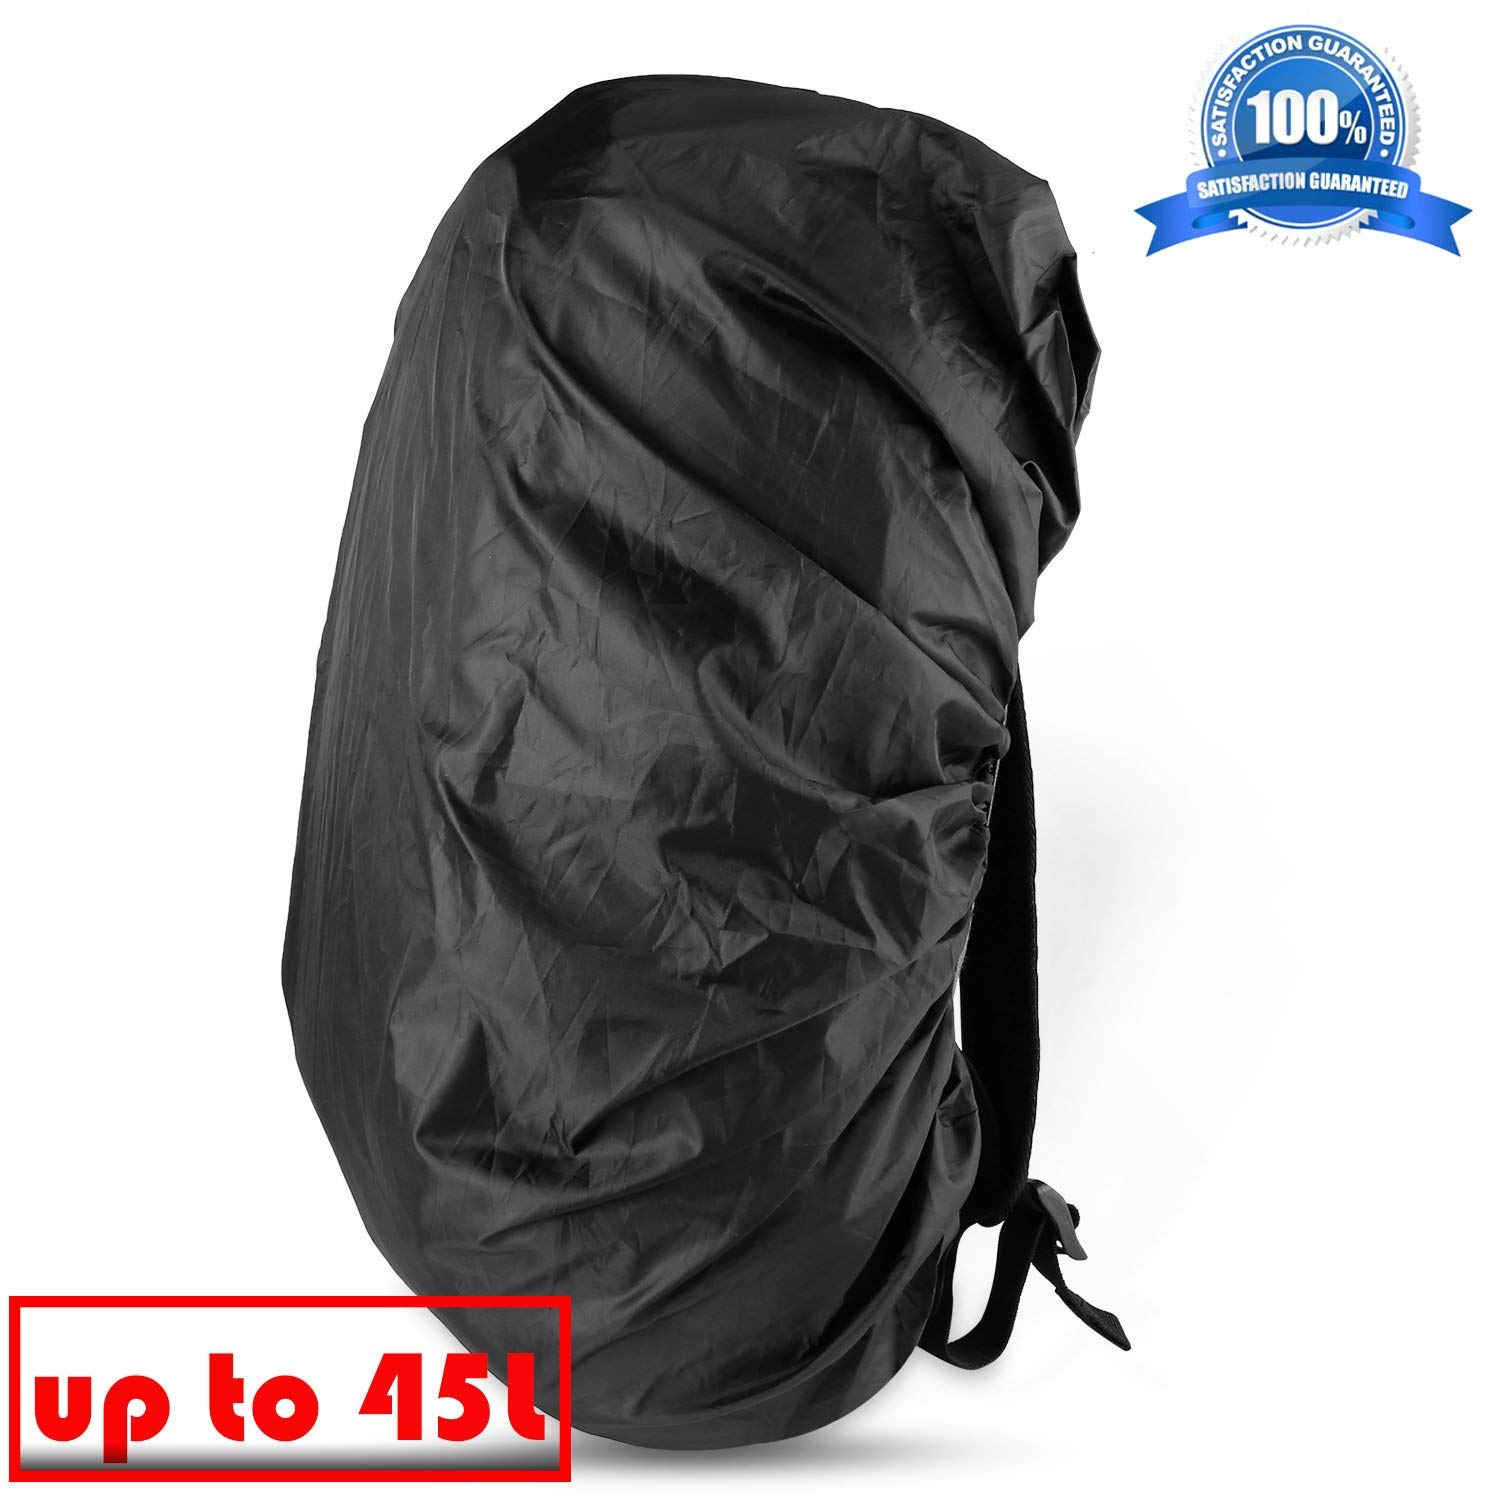 8a37b107a750 Get Quotations · ONSON Backpack Rain Cover